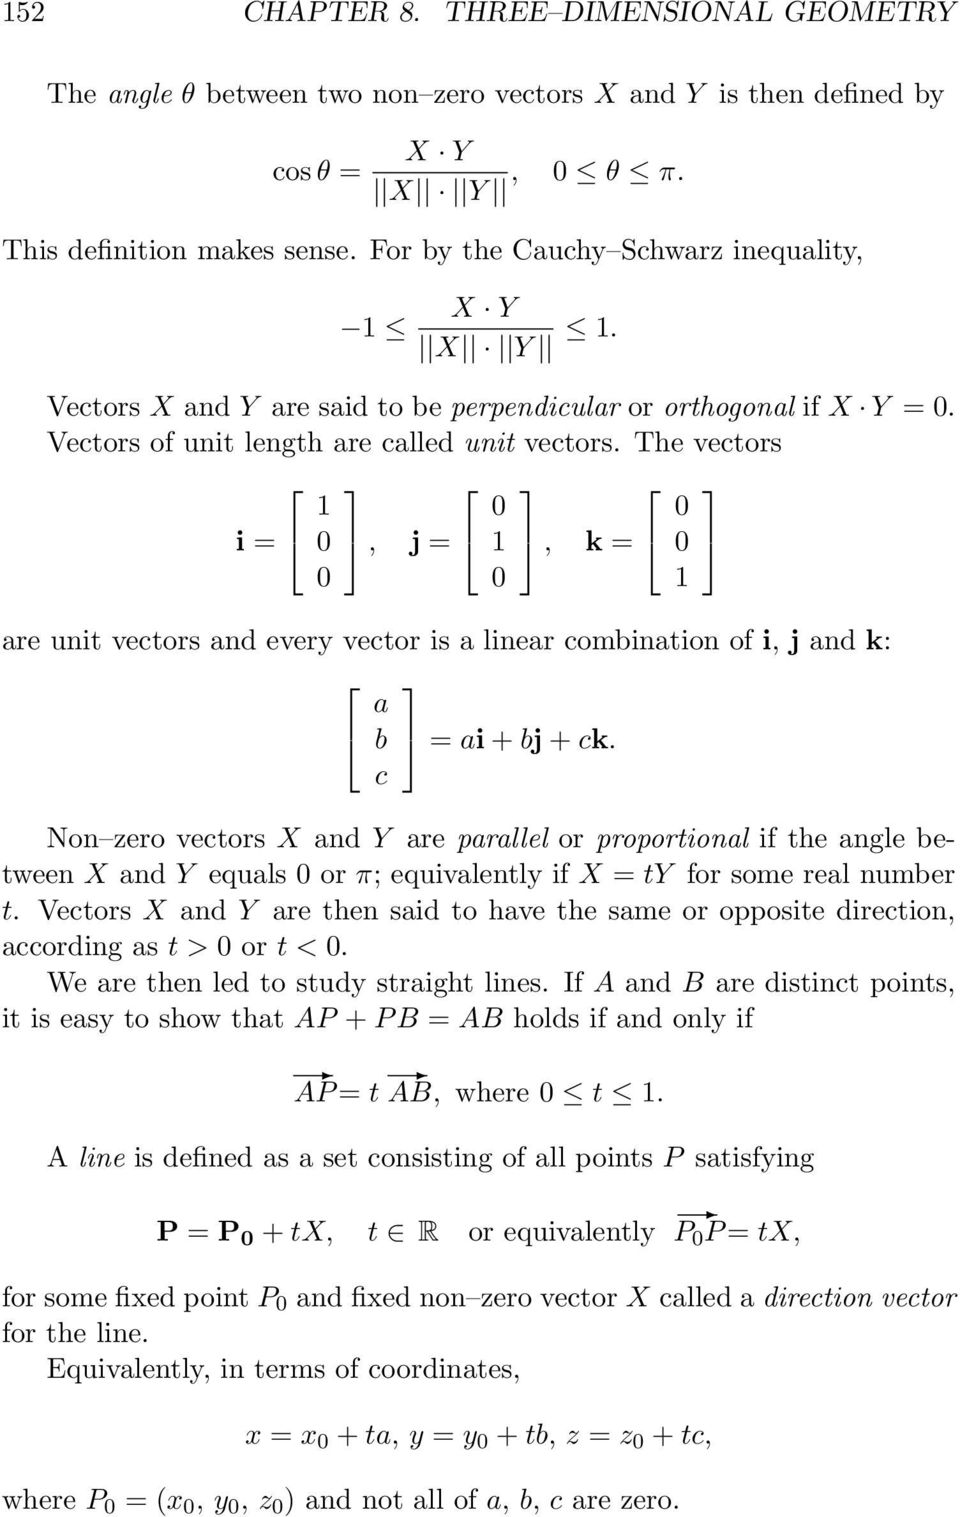 The vectors 1 i = 0, 0 j = 1, 0 k = 0 0 0 1 are unit vectors and every vector is a linear combination of i, j and k: a b = ai + bj + ck.